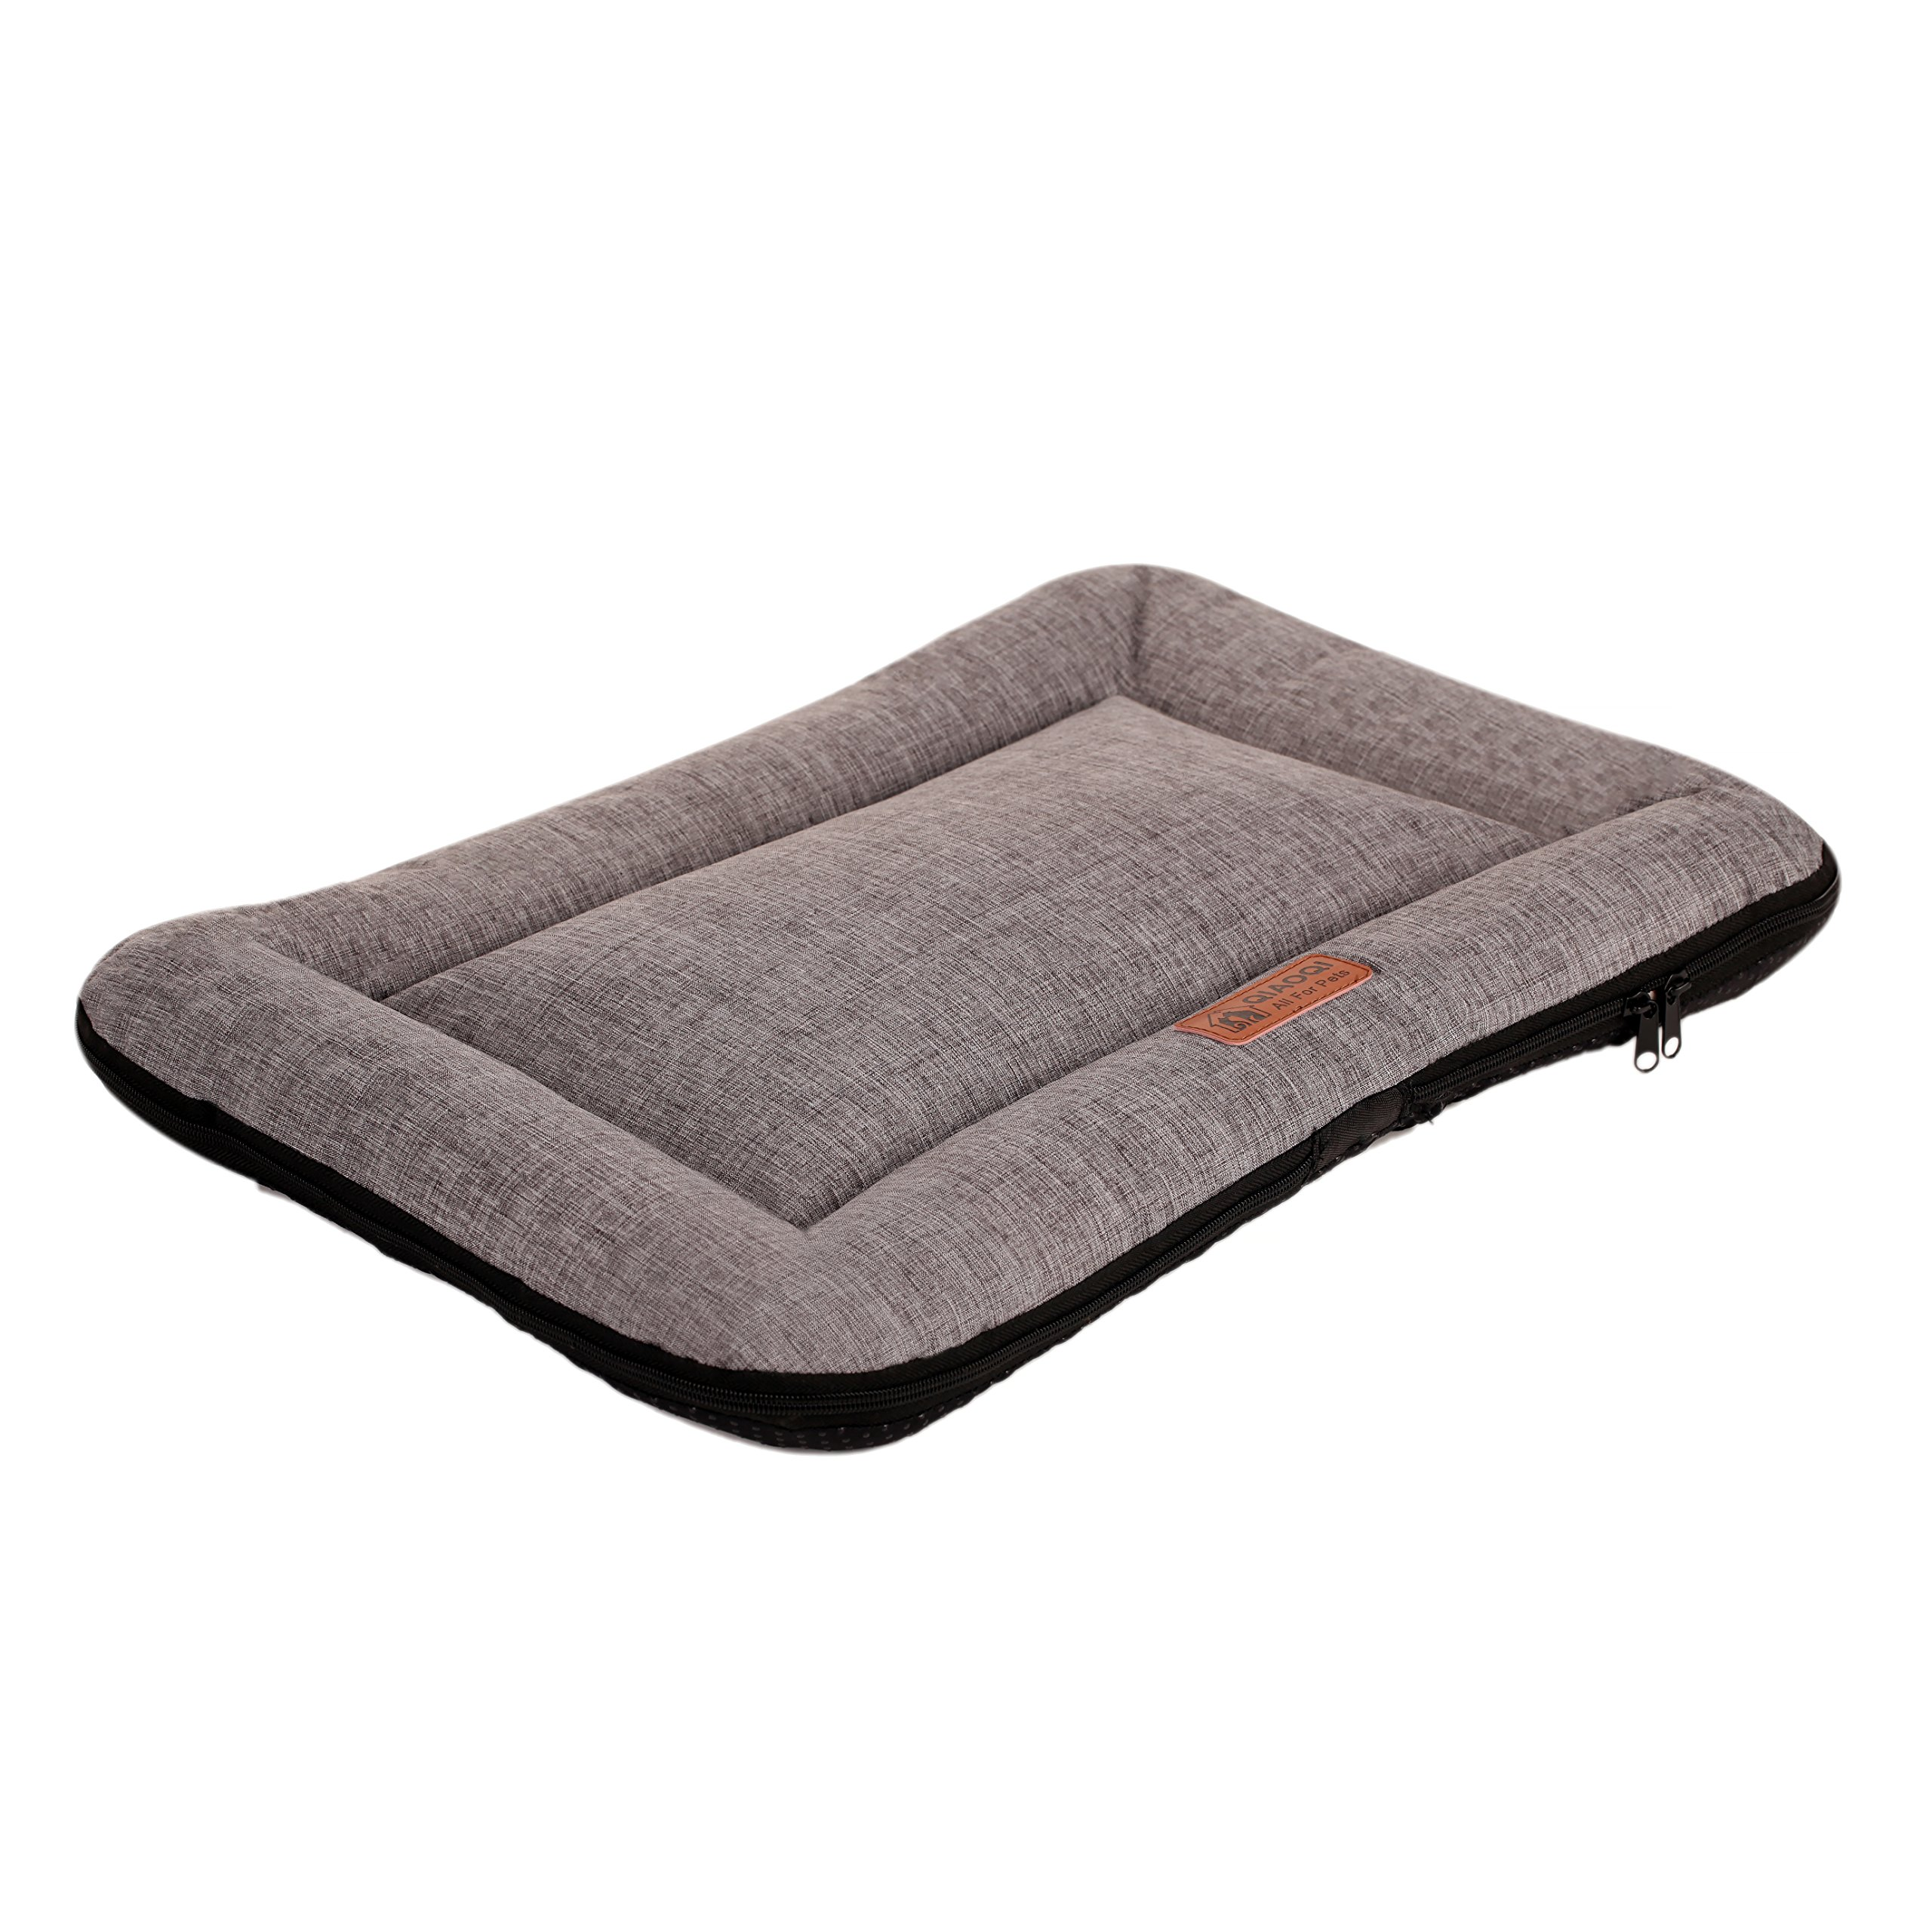 QIAOQI Dog Mattress, Soft Dog/Cat Crate Bed Kennel Mat Machine Washable Pet Bed Liner Small Grey